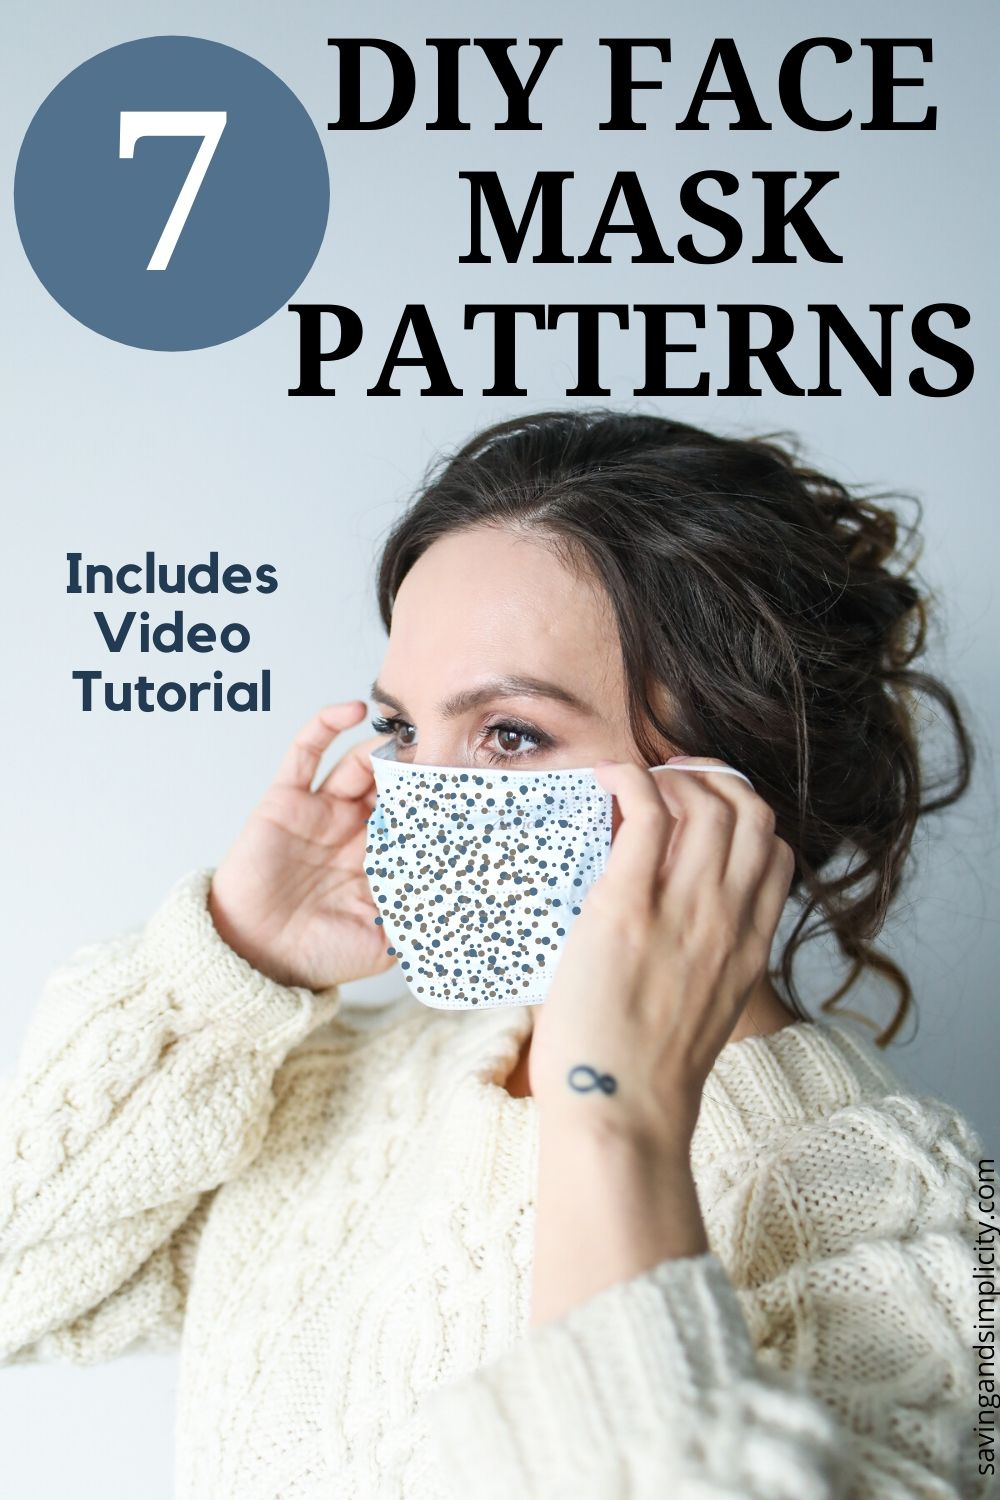 diy face mask patterns